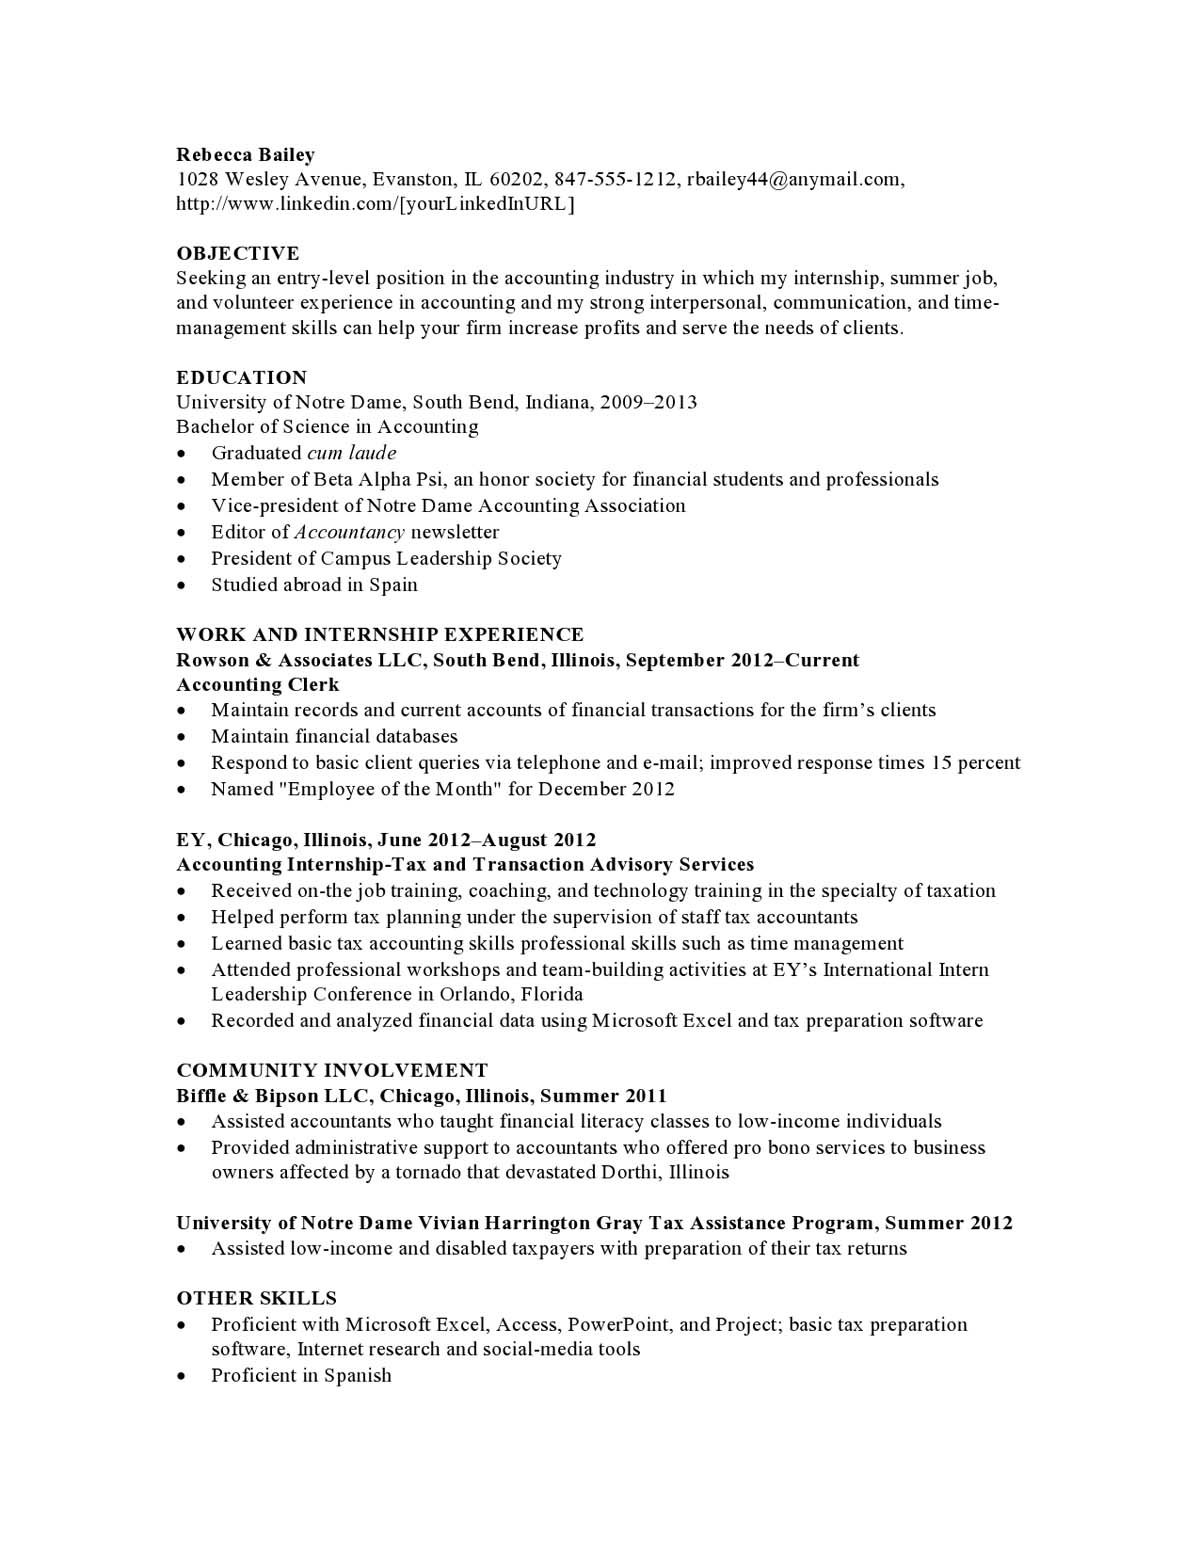 resume samples templates examples vault for hospitality and tourism crescoact19 Resume Resume Samples For Hospitality And Tourism